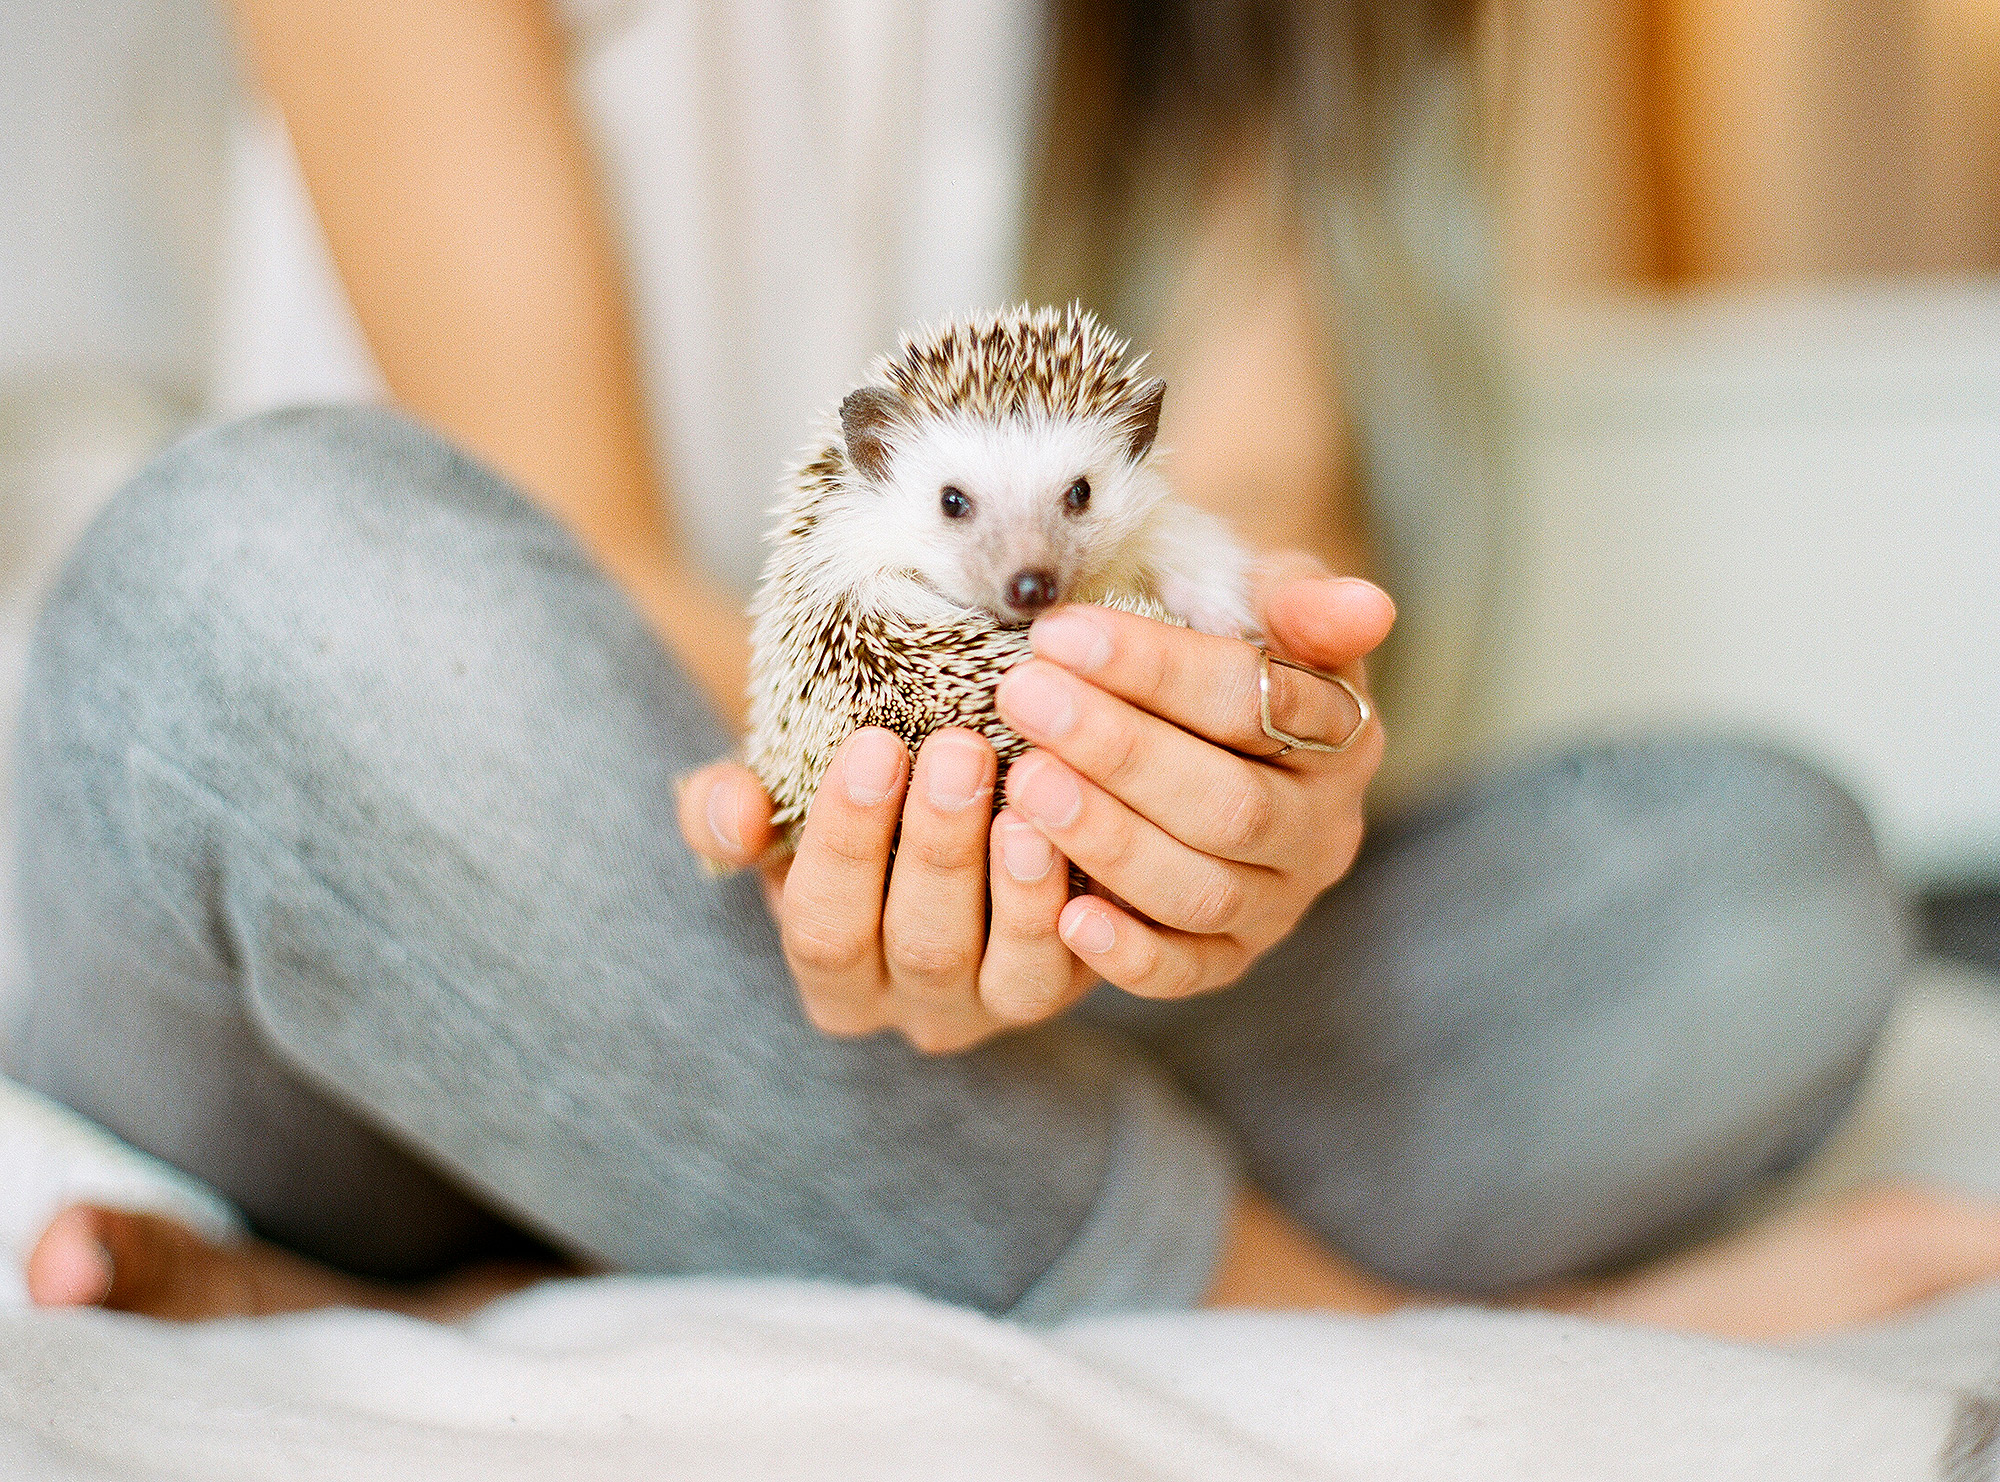 Woman holding hedgehog while sitting on bed